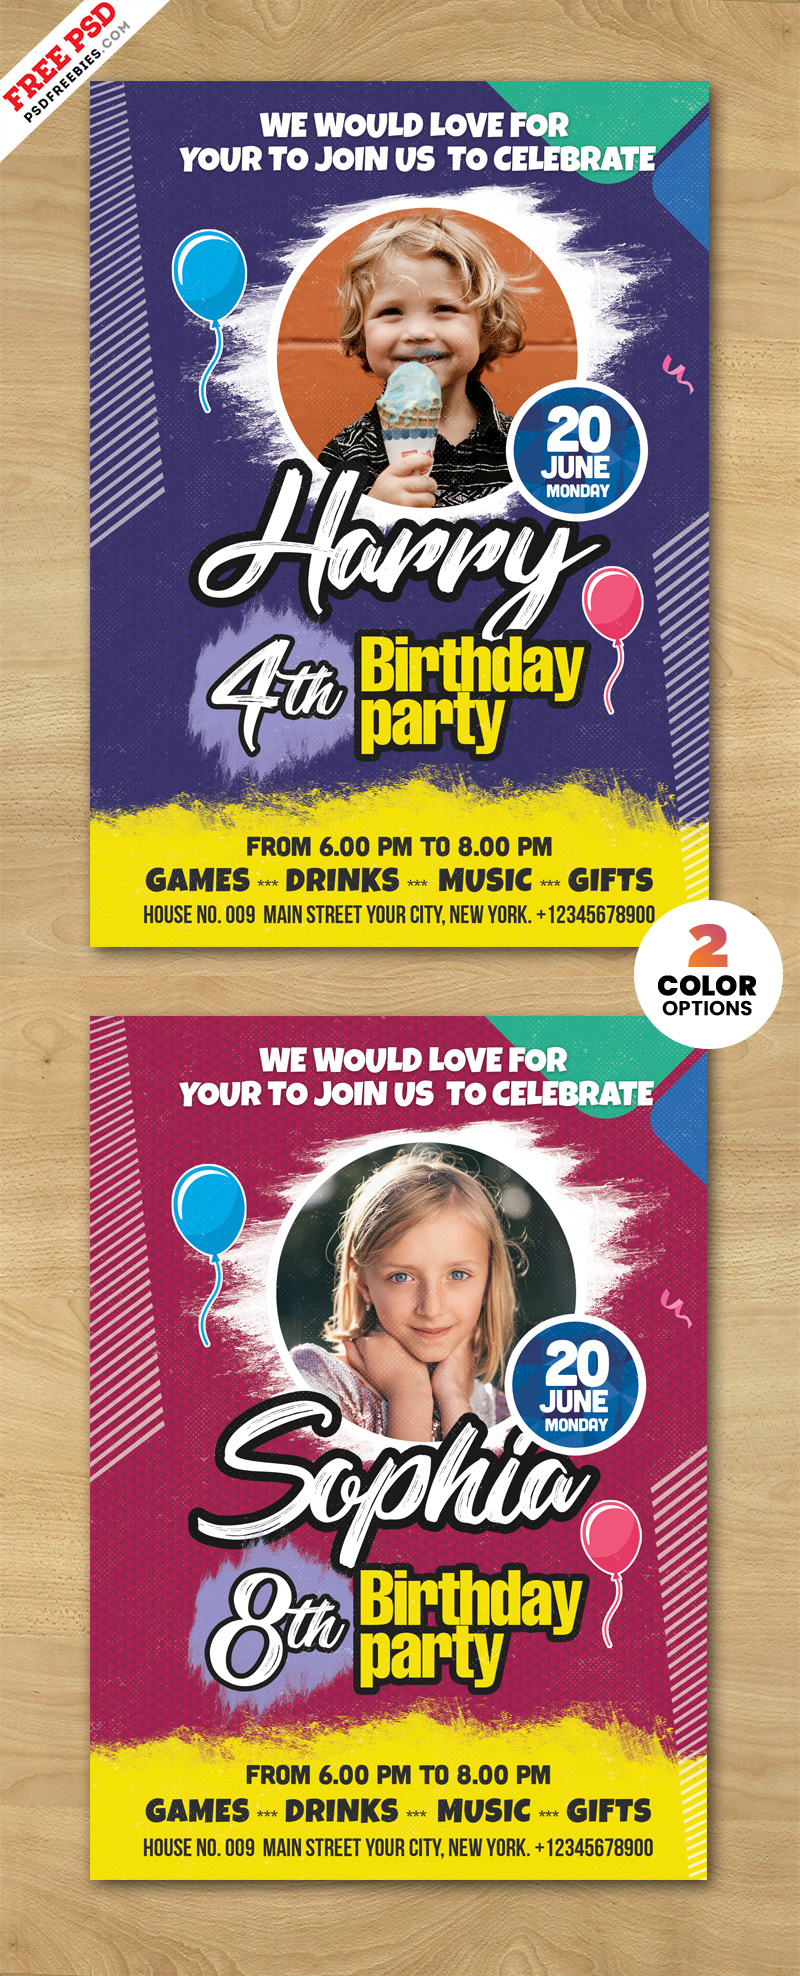 Creative Birthday Party Invitation Card PSD